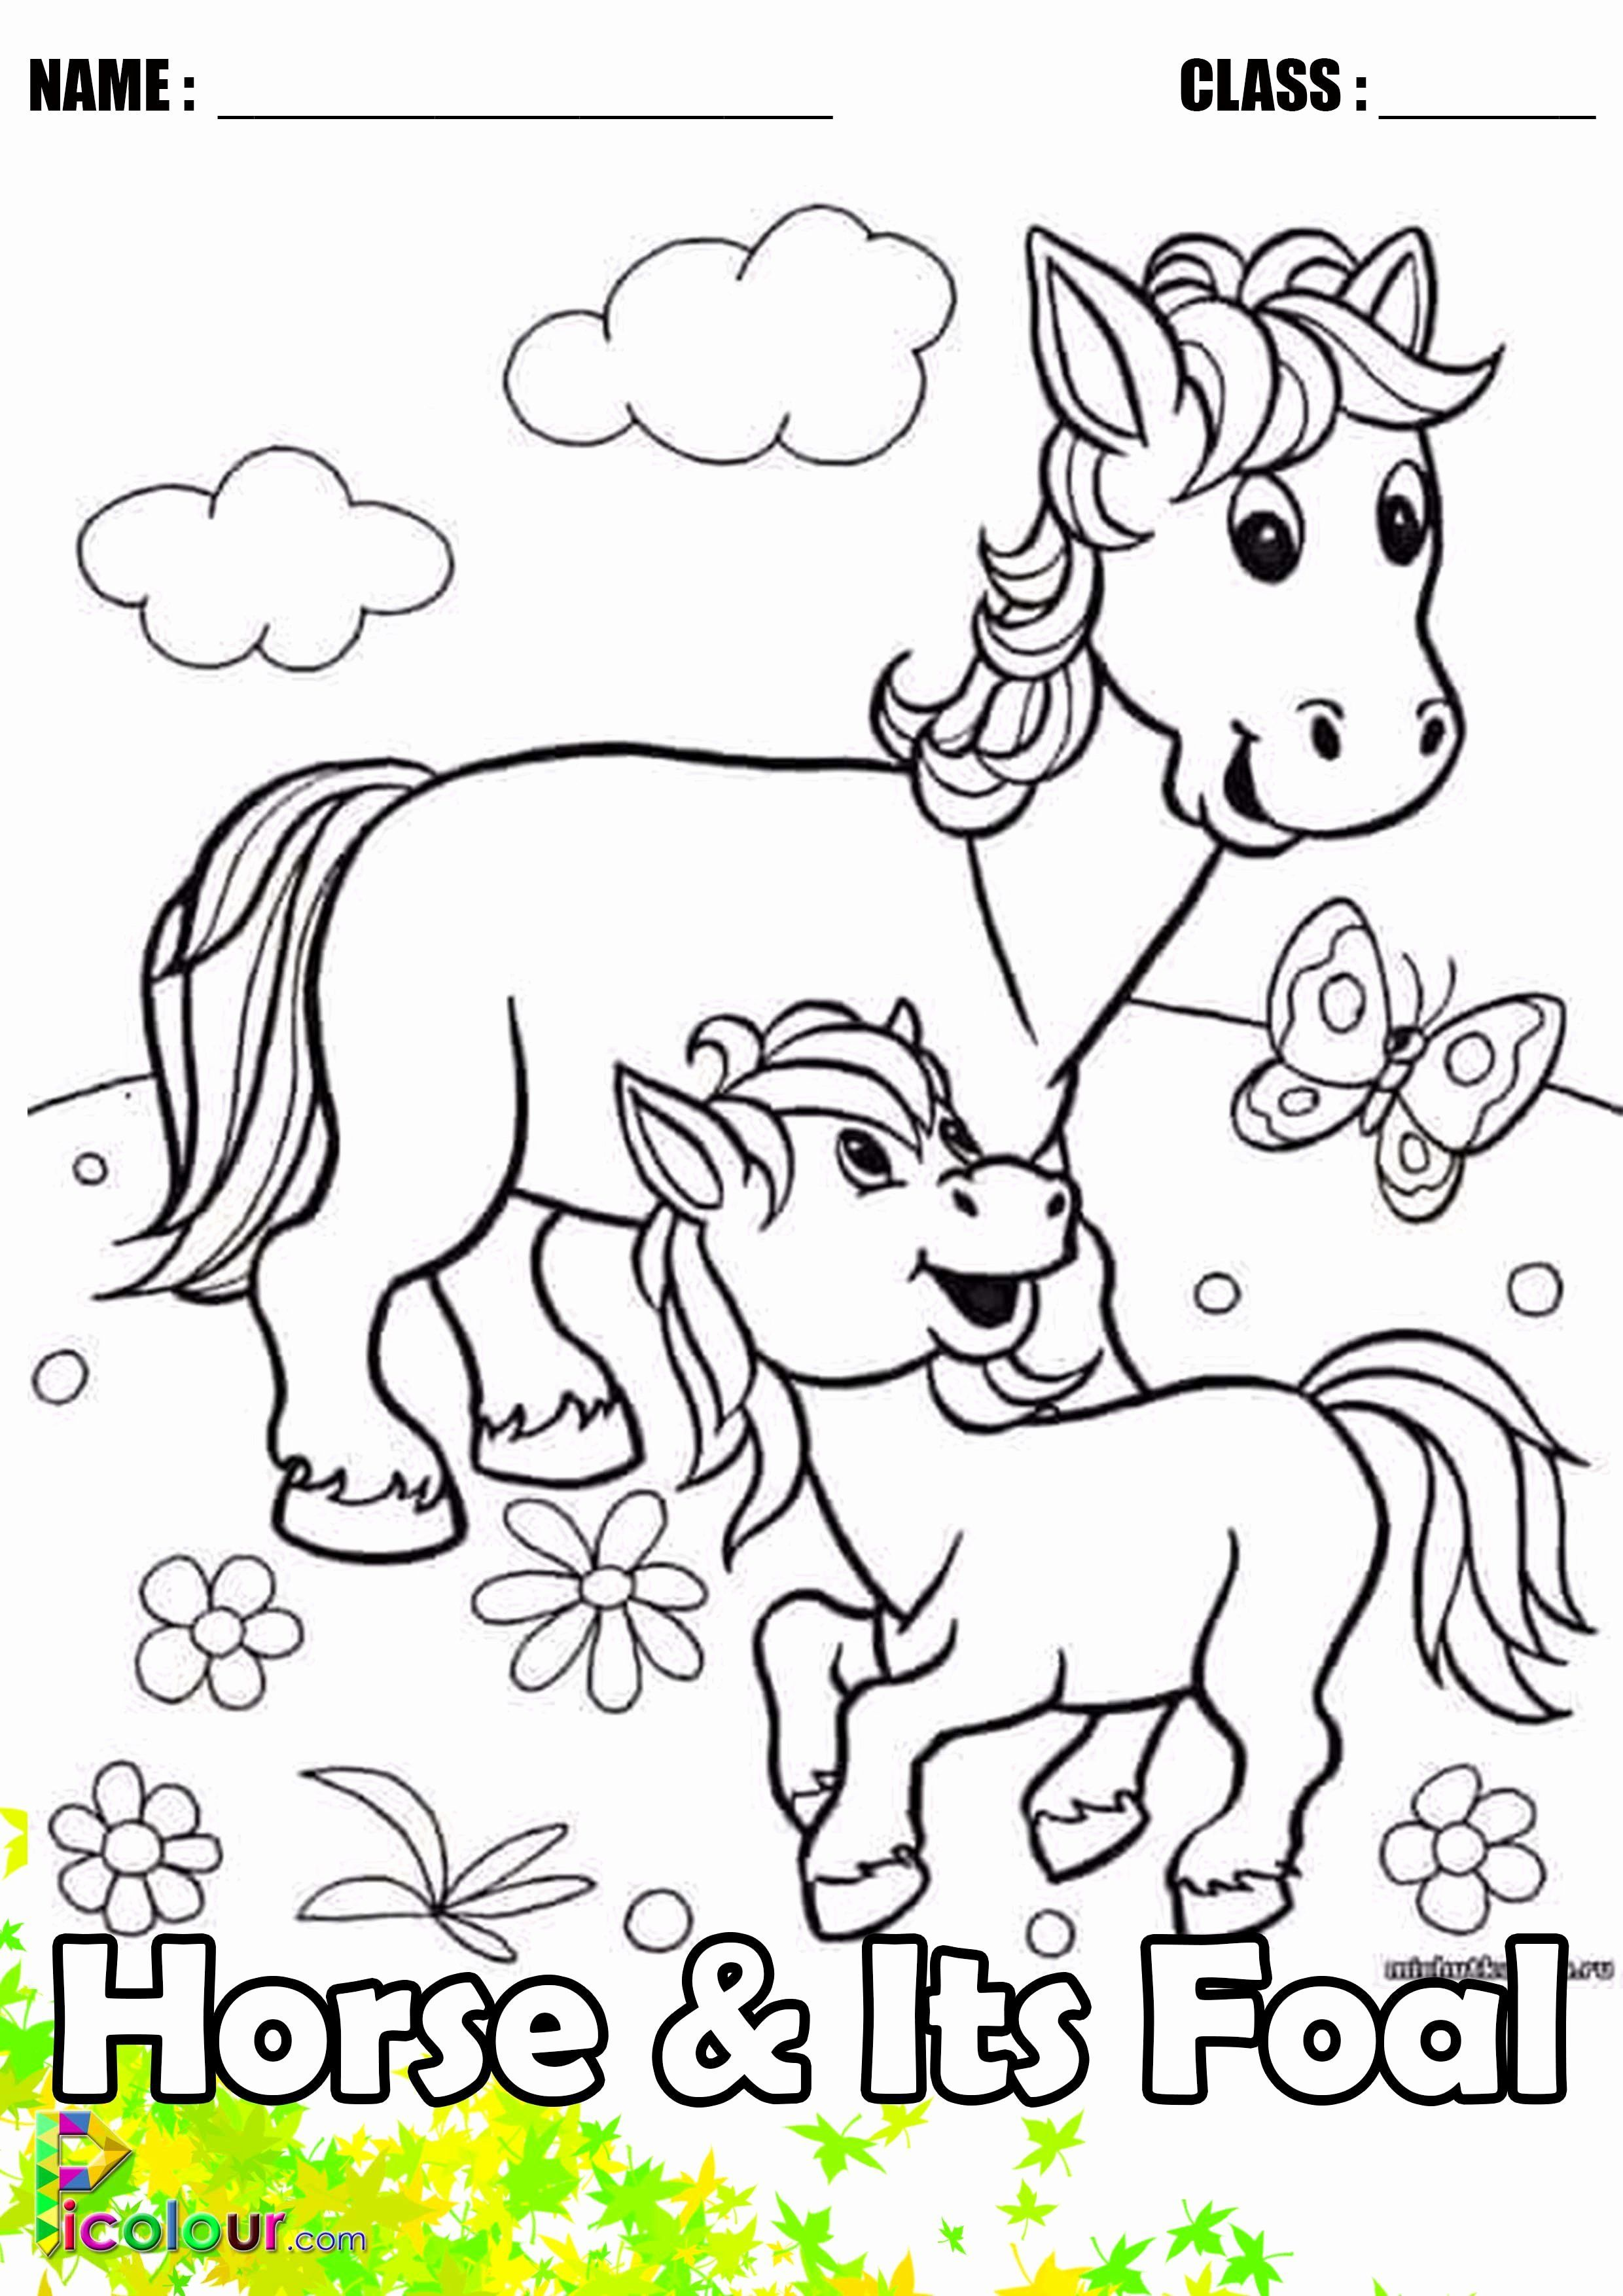 Coloring Book Animals Download Unique Funny Horse Mother And Its Foal Colouring Pages For Kids Animal Coloring Pages Farm Animal Coloring Pages Coloring Books [ 3508 x 2480 Pixel ]